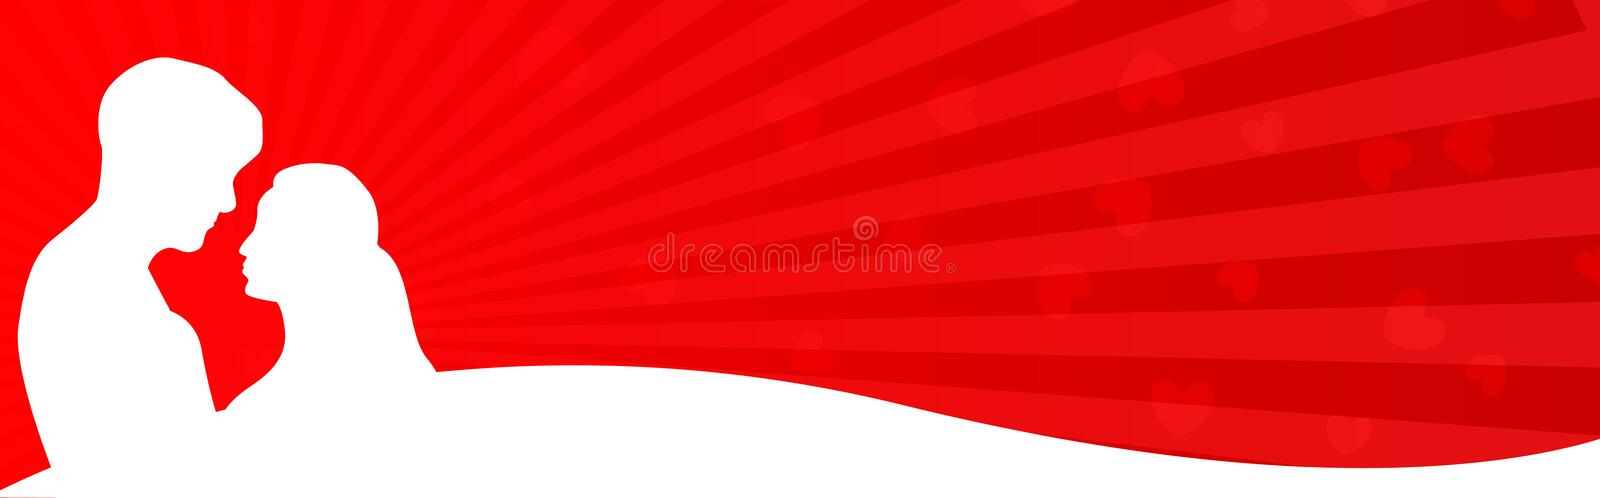 Download Web Header Couple in love stock illustration. Image of female - 8018149